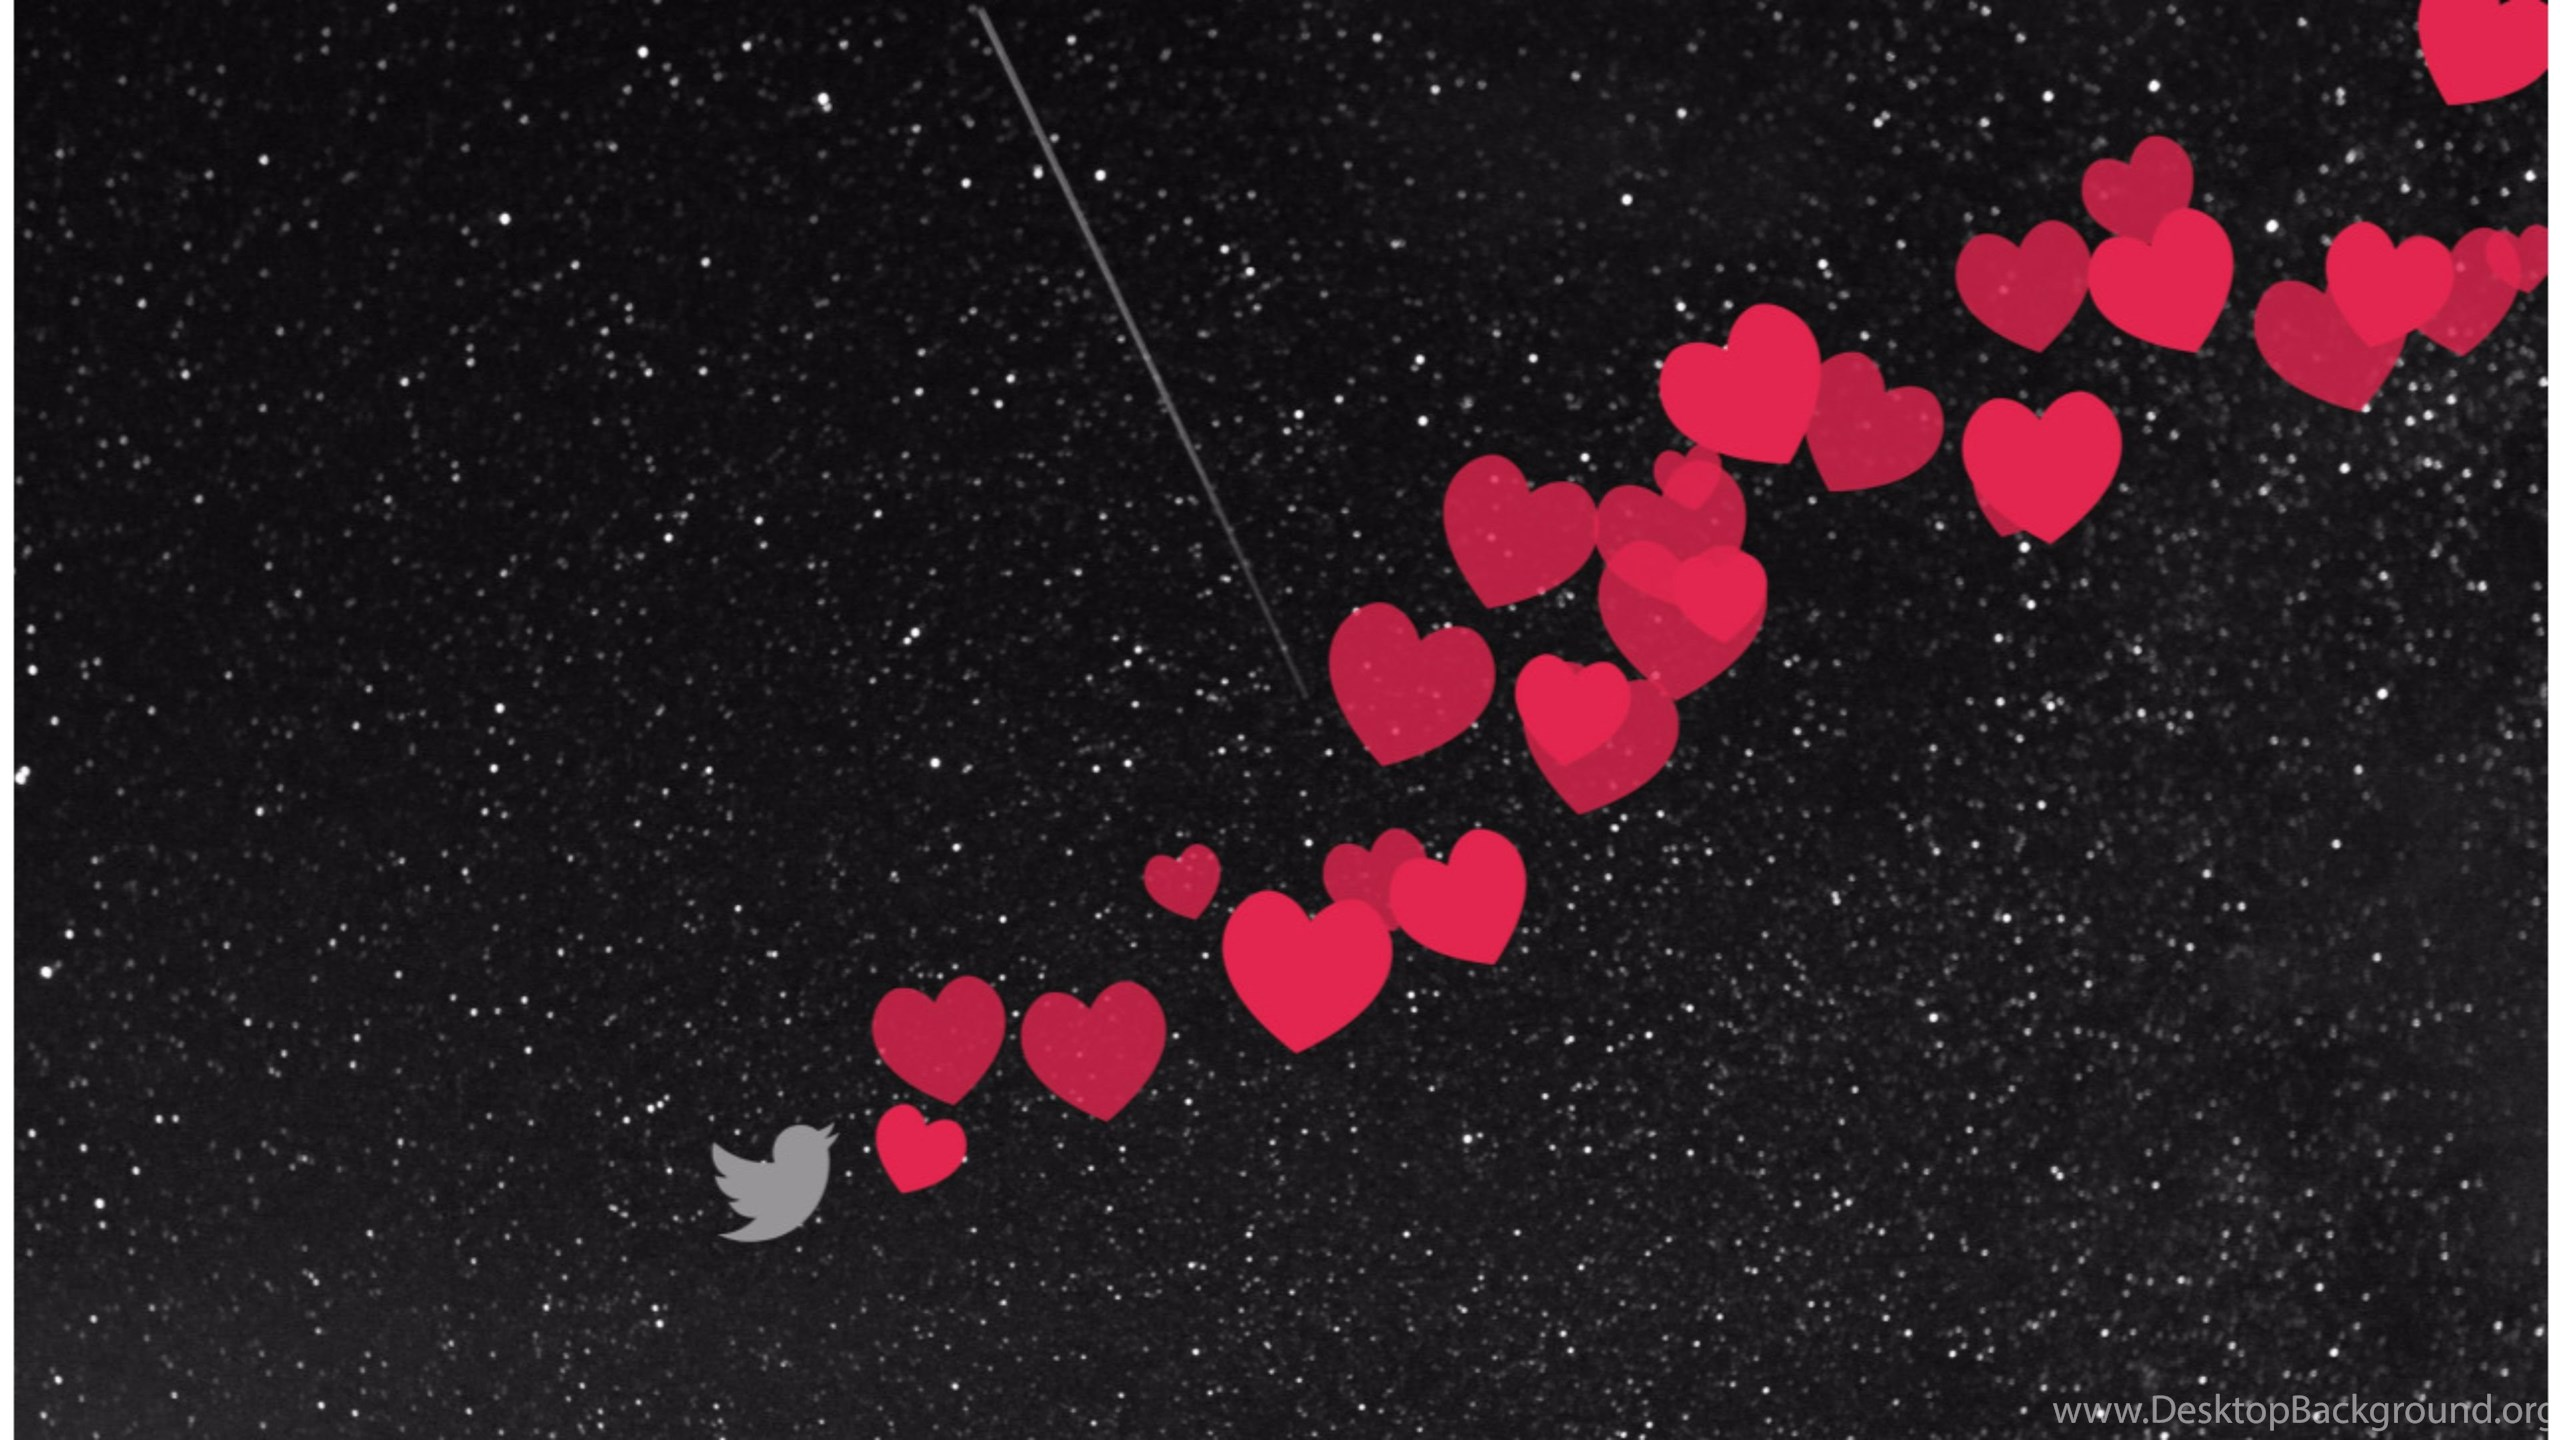 Flying hearts 4k love wallpapers desktop background - I love you 4k ...